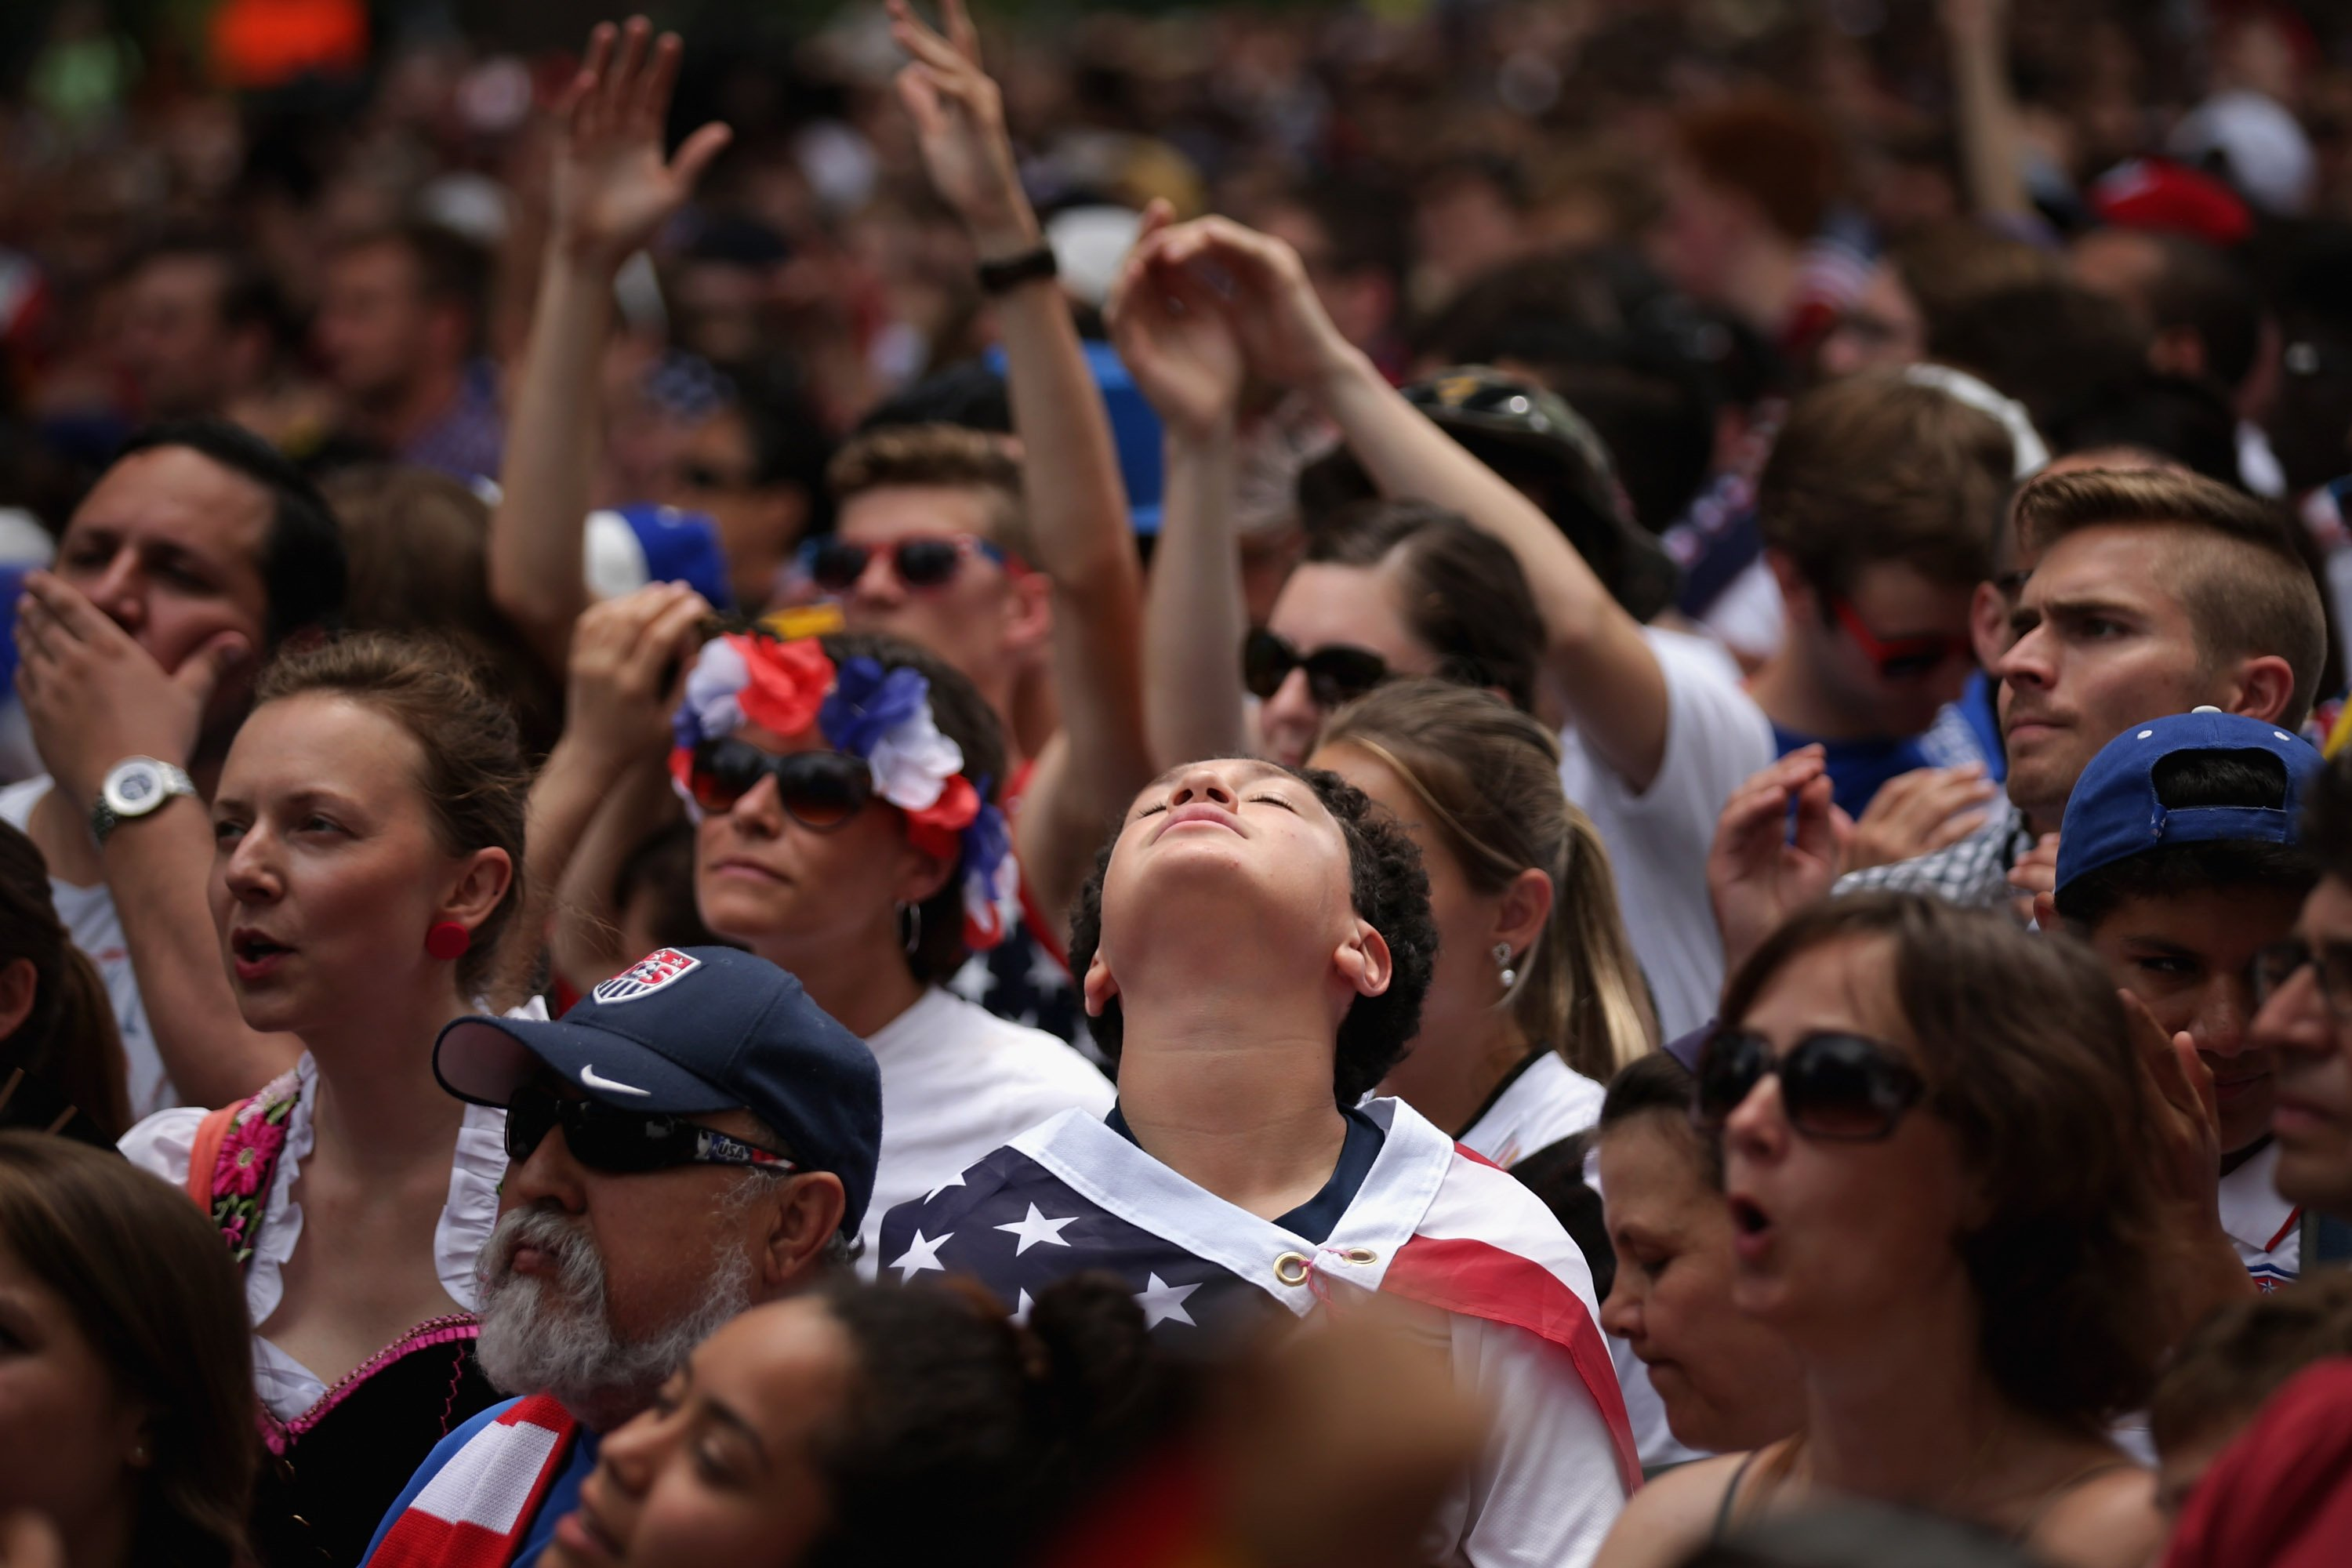 Thousands of soccer fans gather in Dupont Circle park to watch the US v Germany World Cup match on June 26, 2014 in Washington.